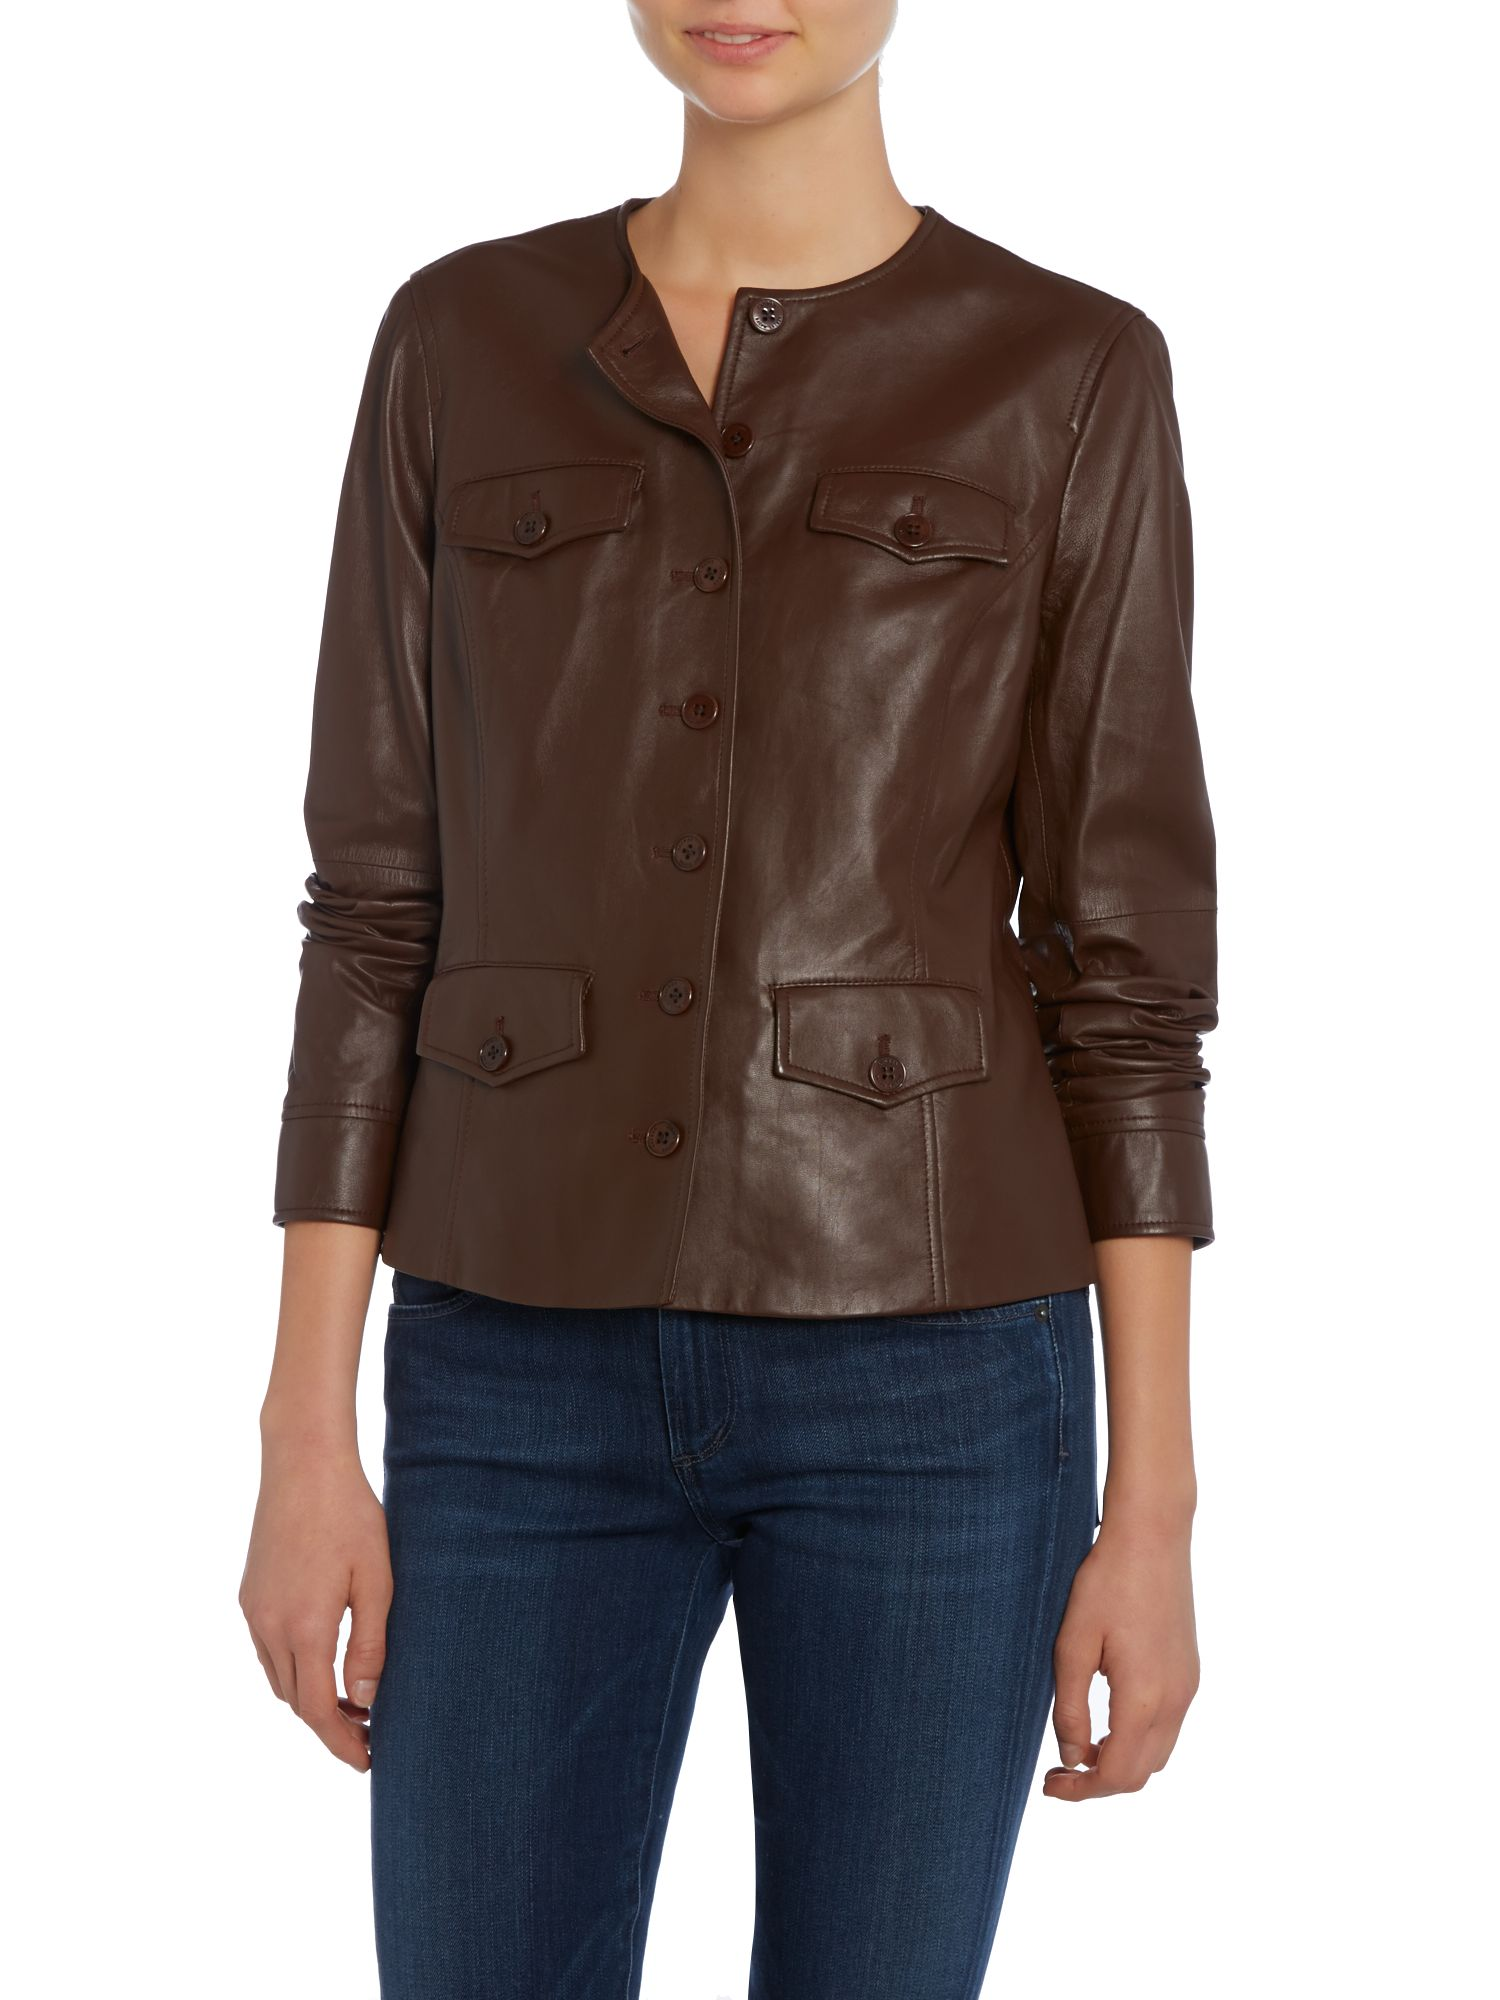 Leather jacket with pockets